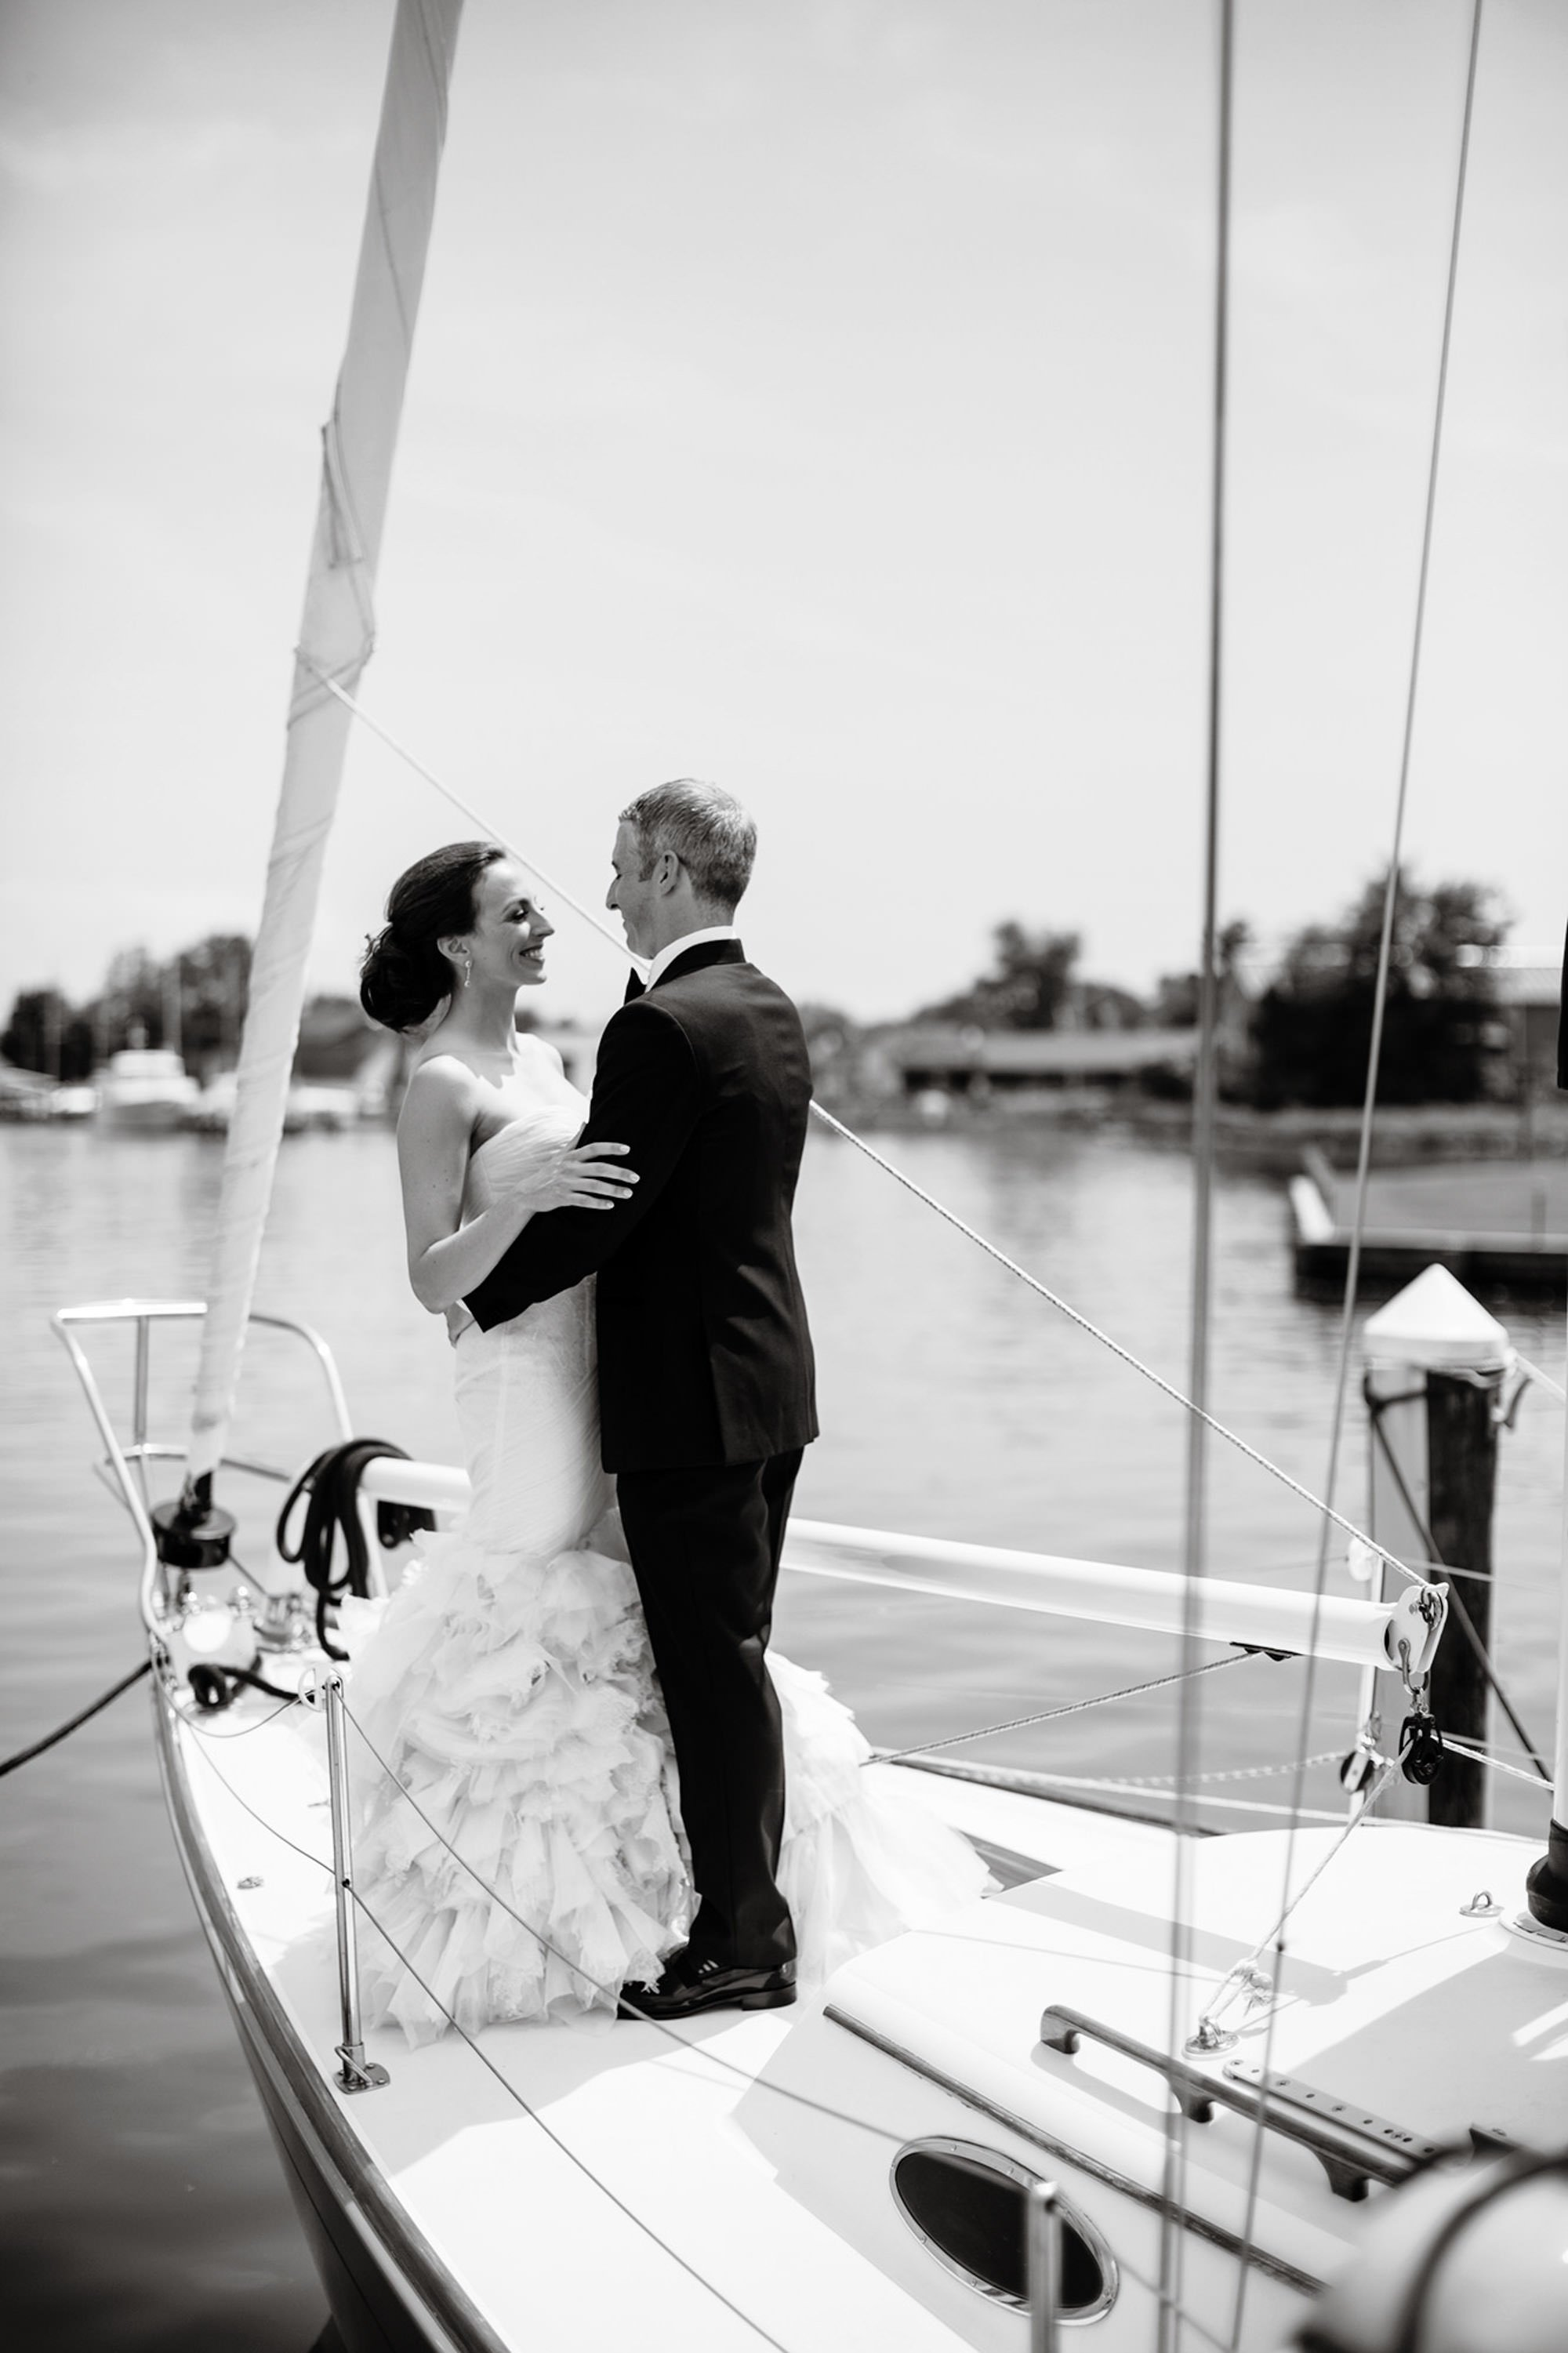 A portrait of the bride and groom on a boat.